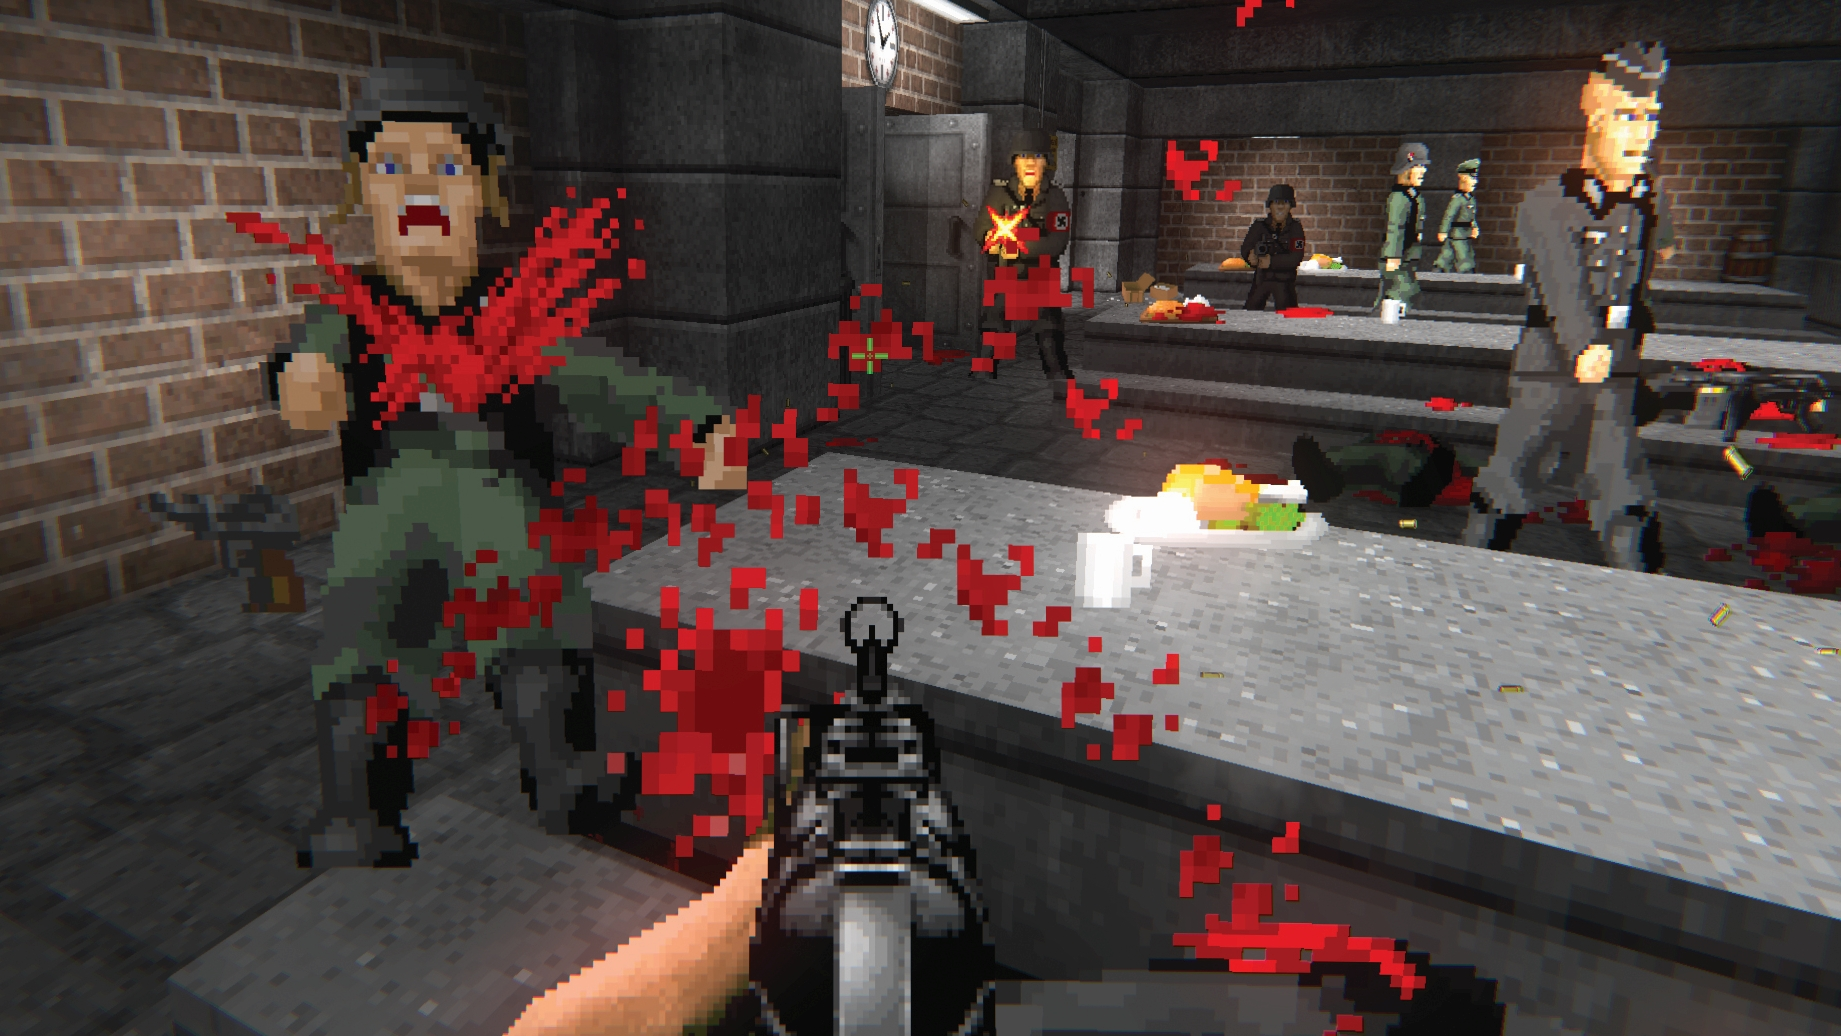 Wolfendoom: Blade of Agony is a brilliant mashup of modern ideas and